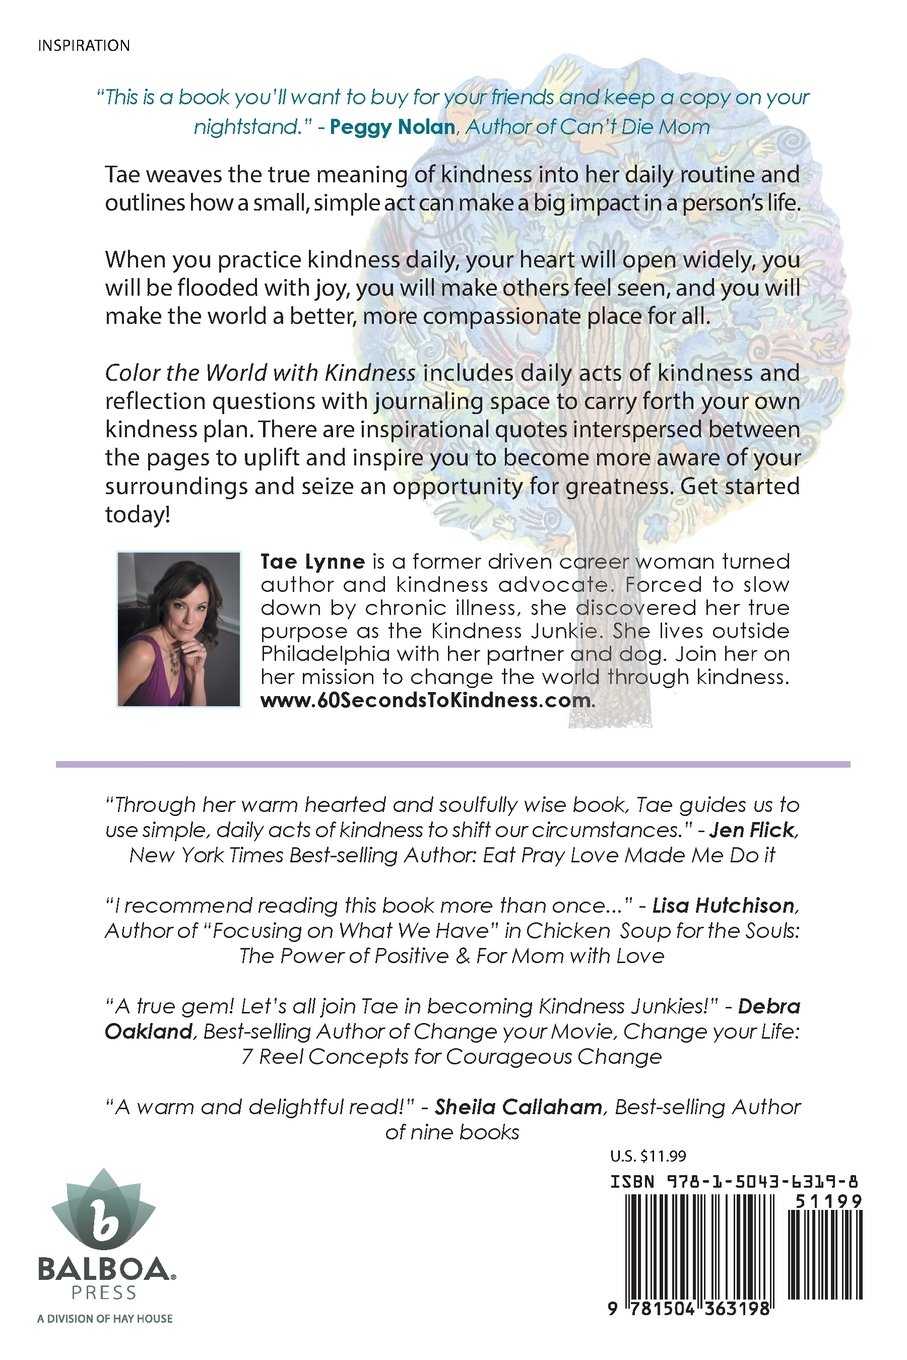 Color The World With Kindness: Tae Lynne: 9781504363198: Amazon: Books